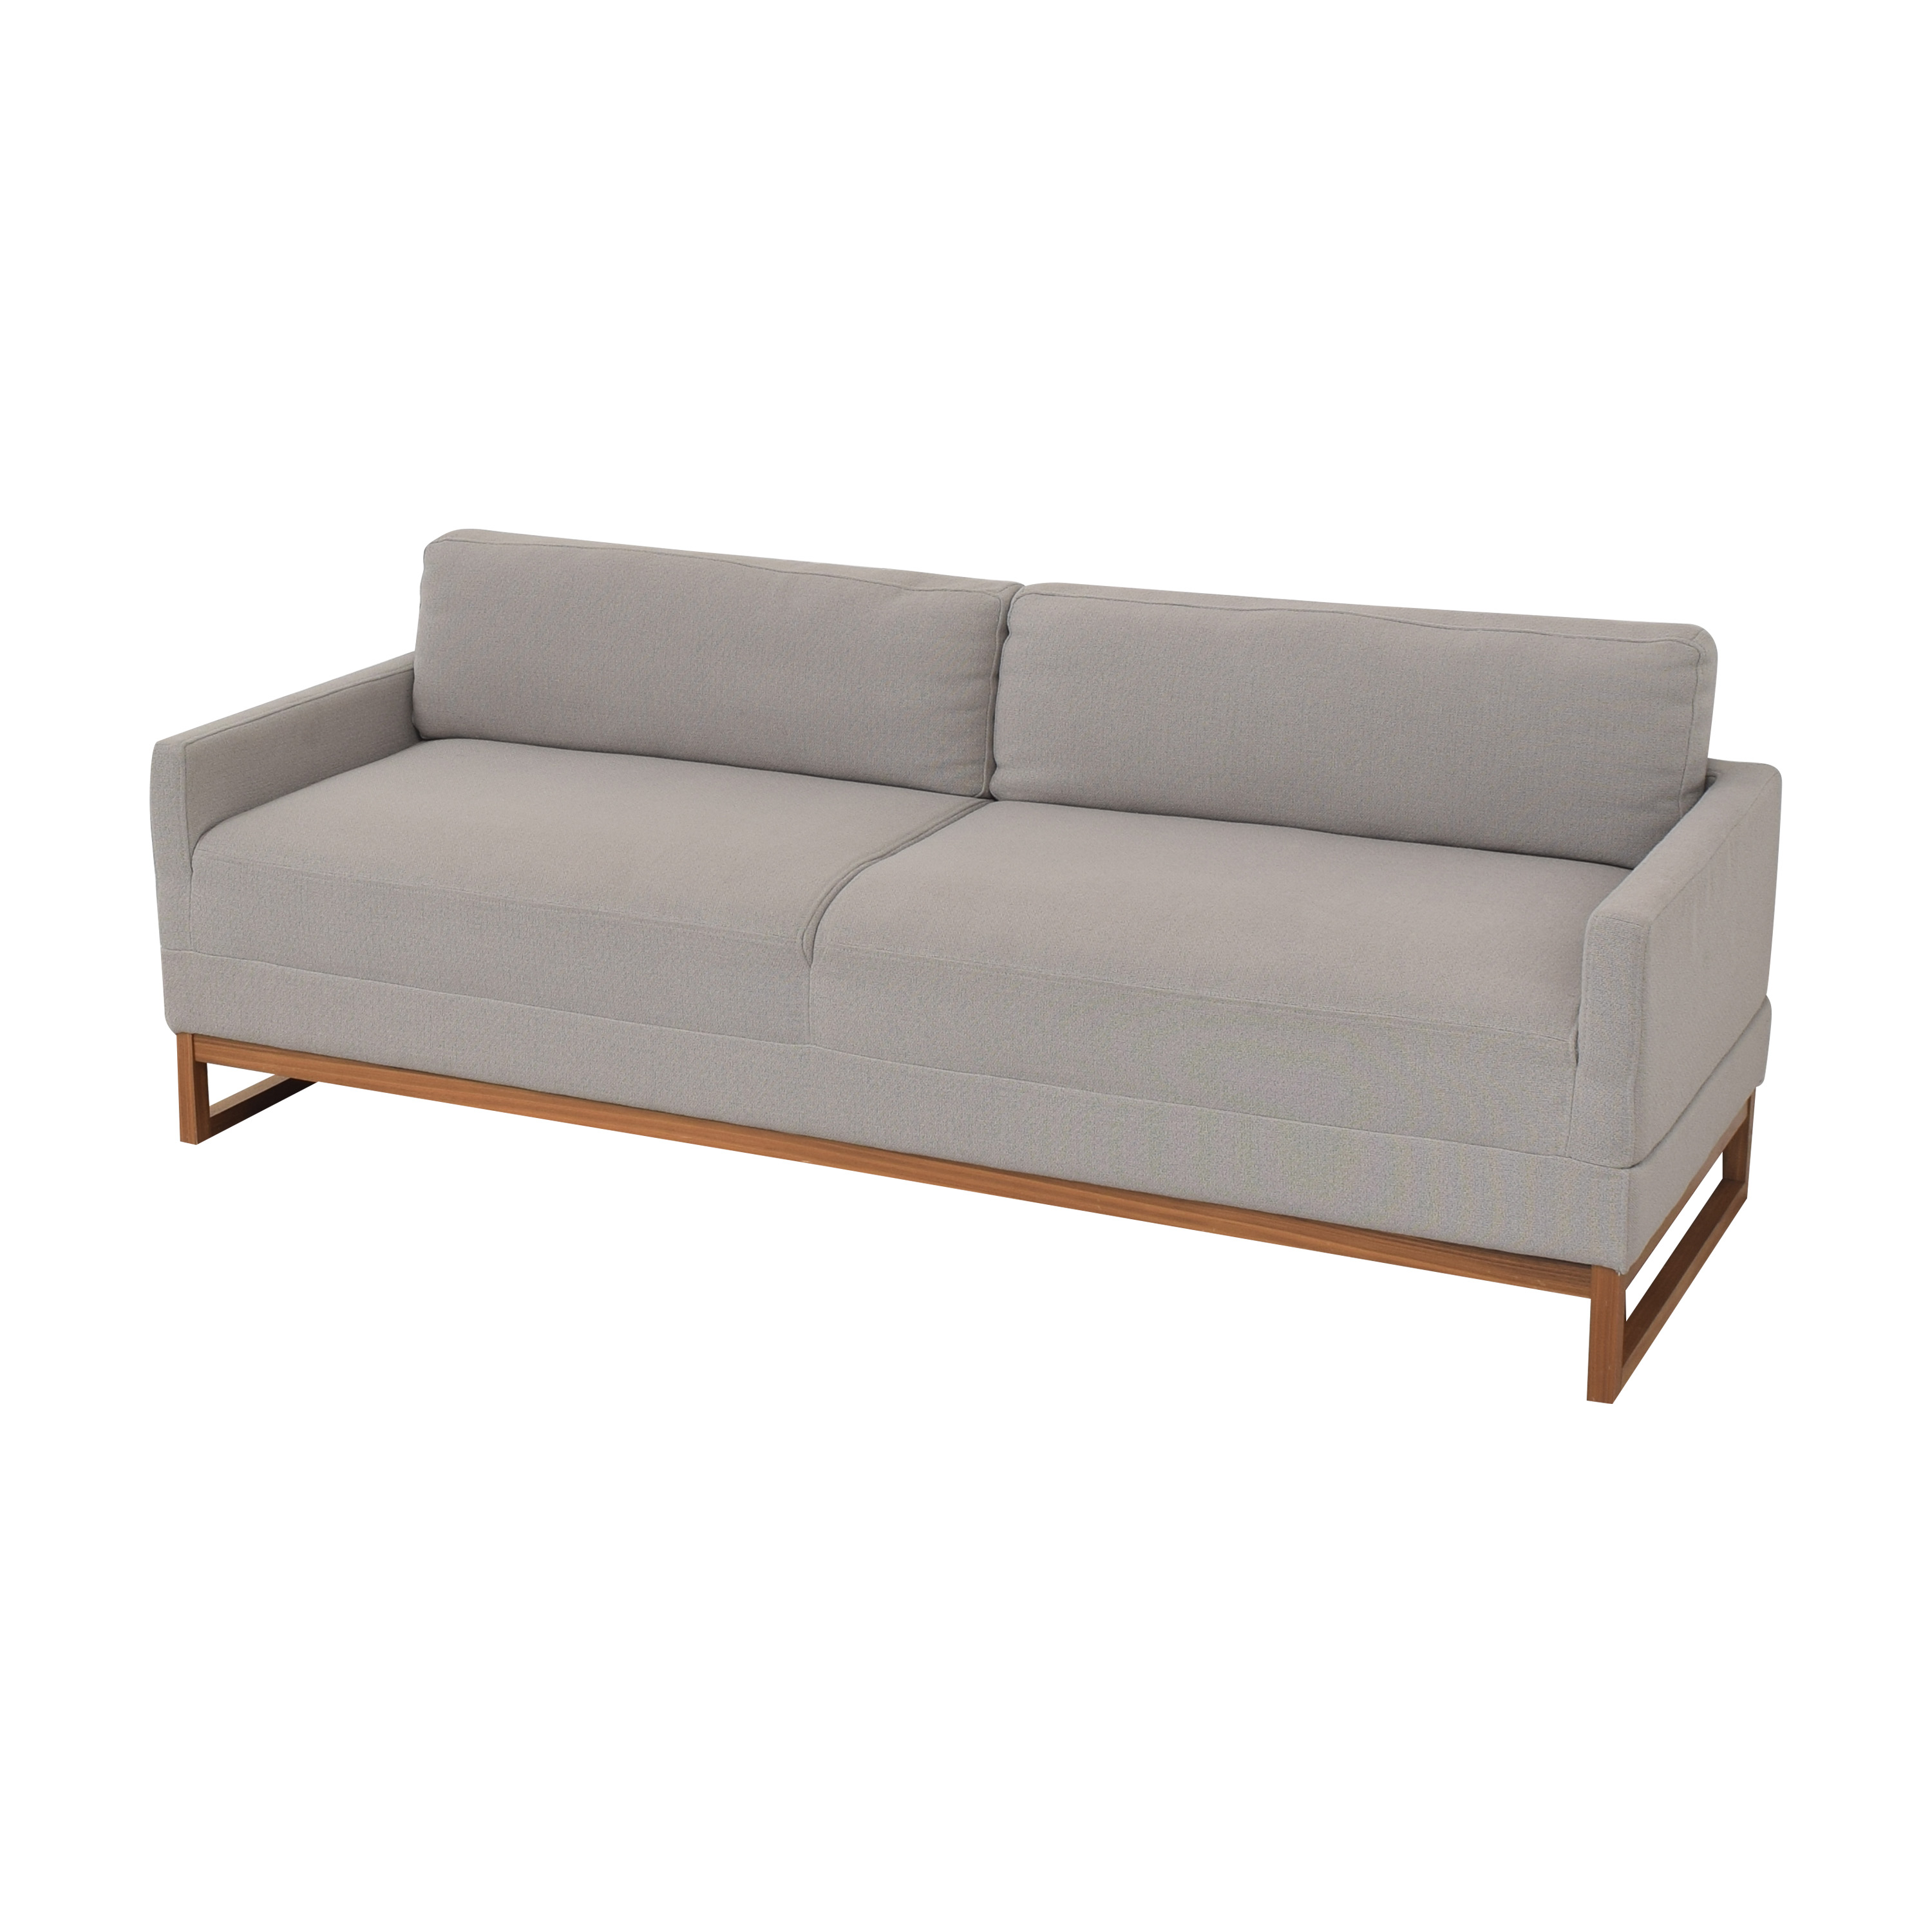 Blu Dot Blu Dot Diplomat Sleeper Sofa ct